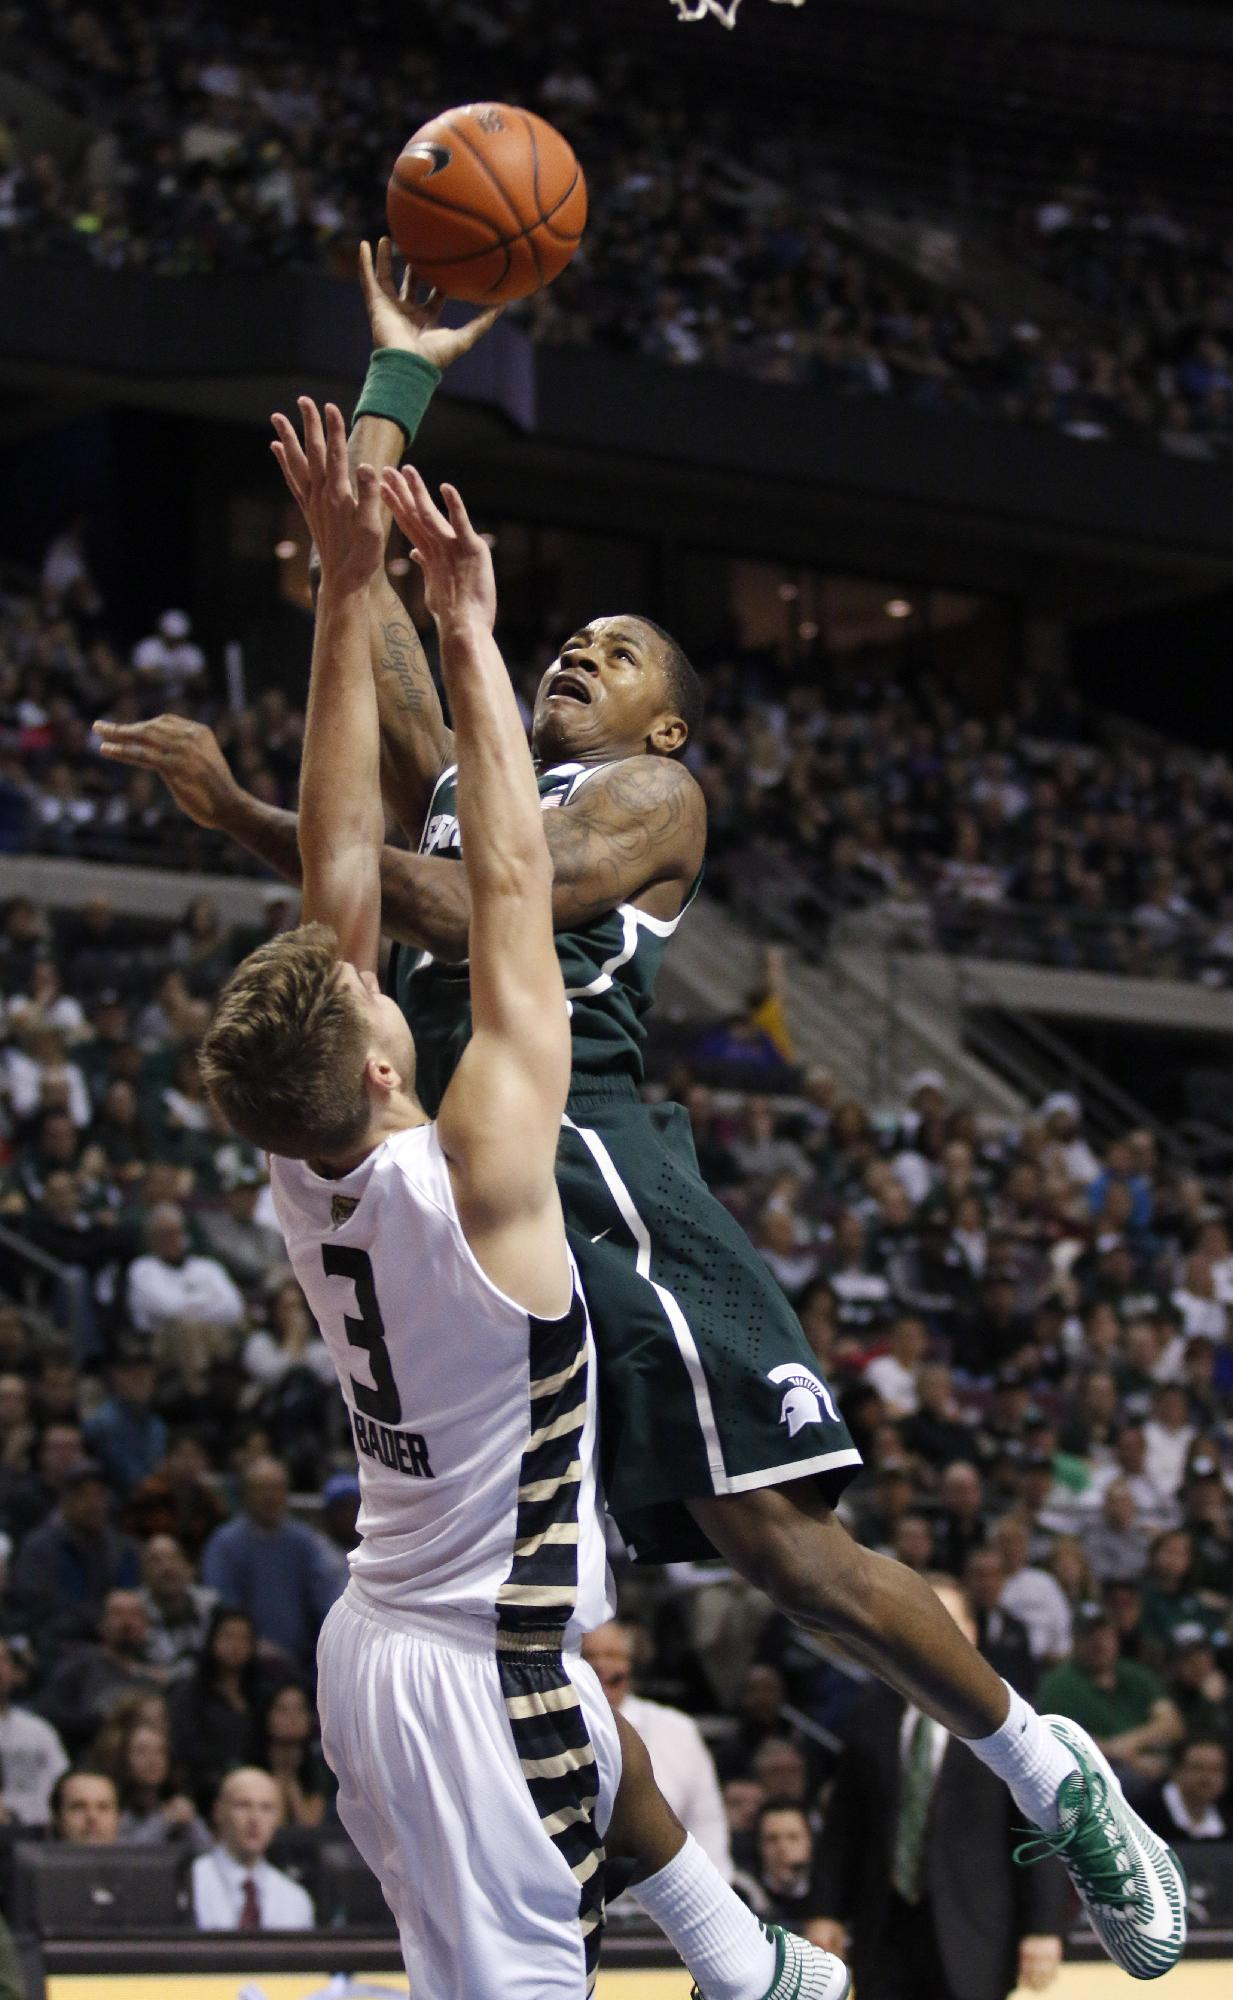 Michigan State's Keith Appling, right, puts up a shoot against Oakland's Travis Bader (3) during the second half of an NCAA college basketball game, Saturday, Dec. 14, 2013, in Auburn Hills, Mich. Appling led Michigan State with 21 points in a 67-63 win